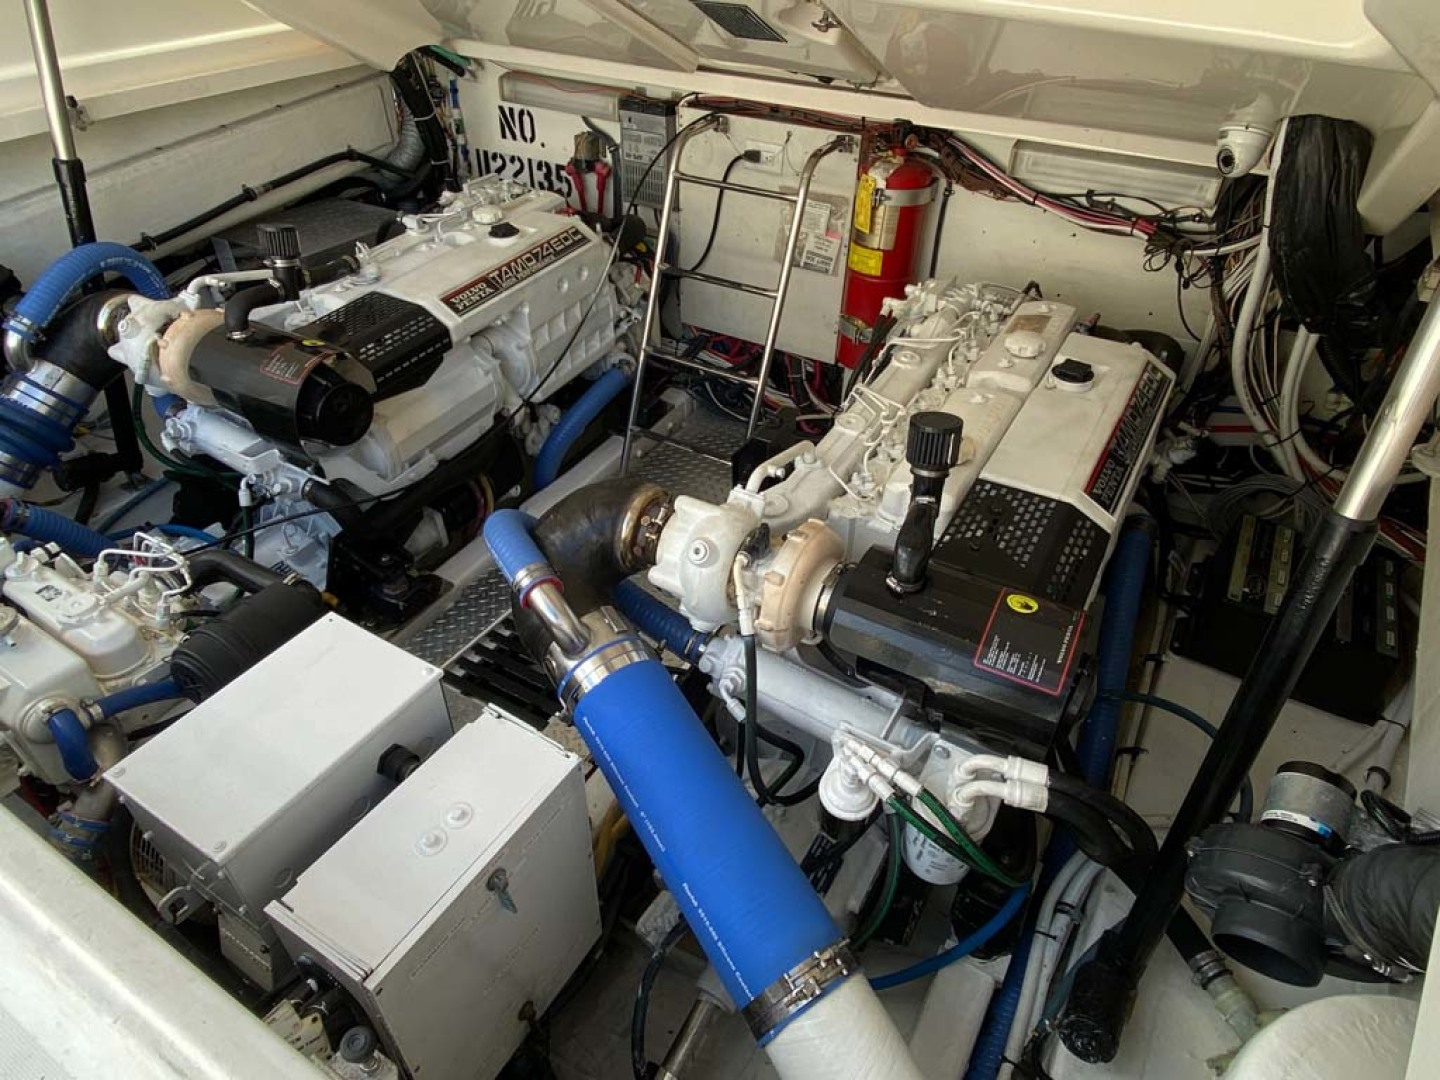 Pursuit-3800 Express 2002-Going Deep Destin-Florida-United States-Engine Compartment-1276715 | Thumbnail